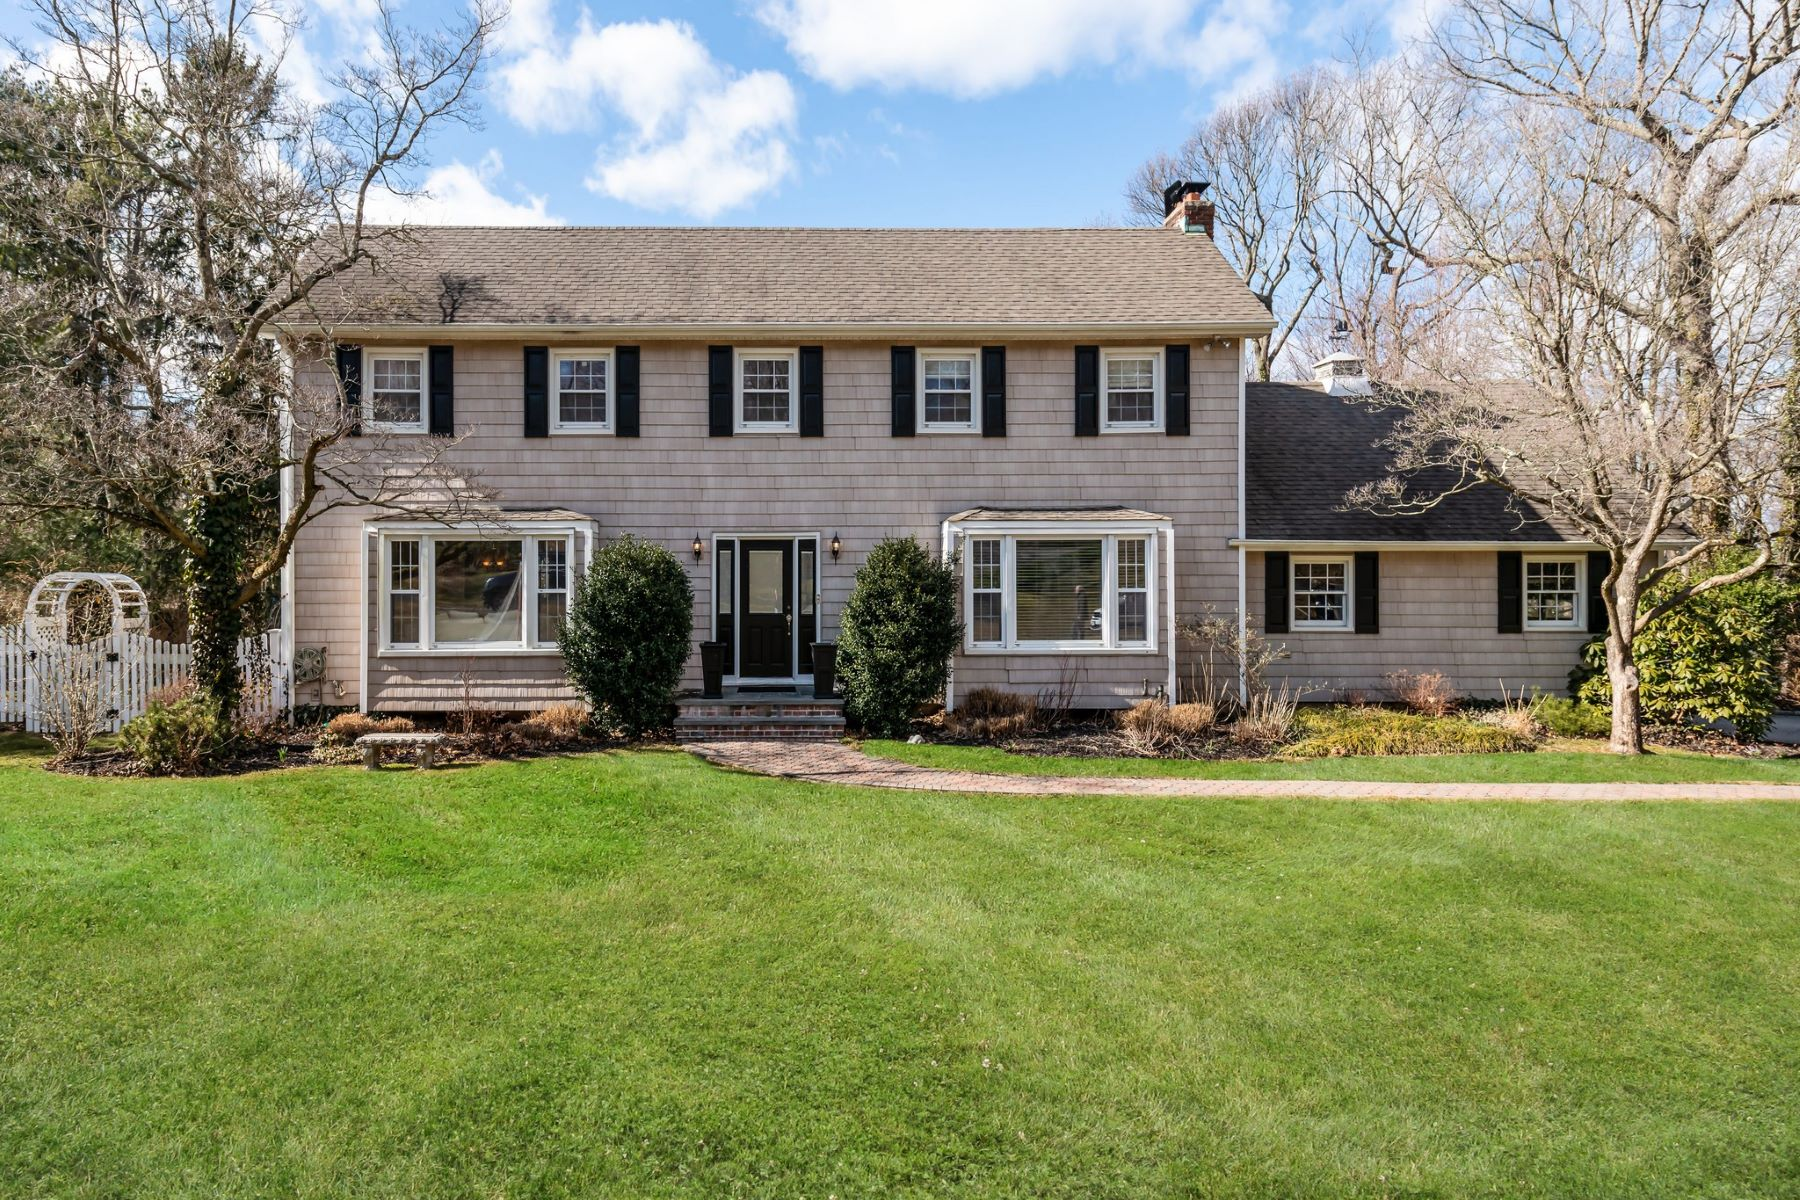 Single Family Homes for Sale at Laurel Hollow 35 Springwood Path Laurel Hollow, New York 11791 United States